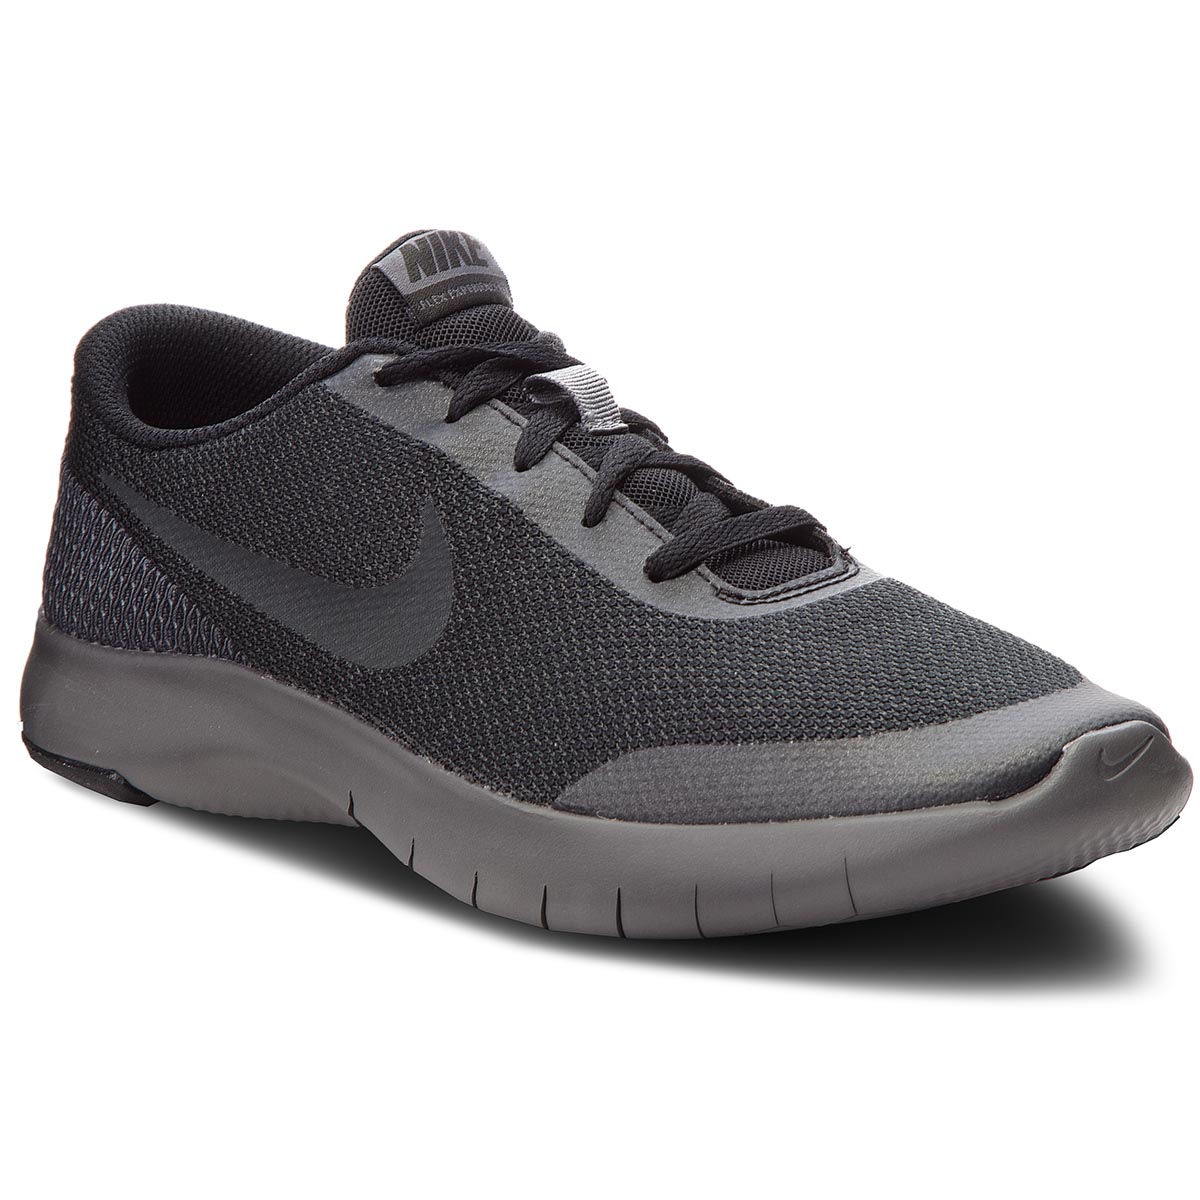 a07a79ede1 Shoes NIKE Flex Experience Rn 7 (GS) 943284 006 Black/Anthracite/Dark Grey